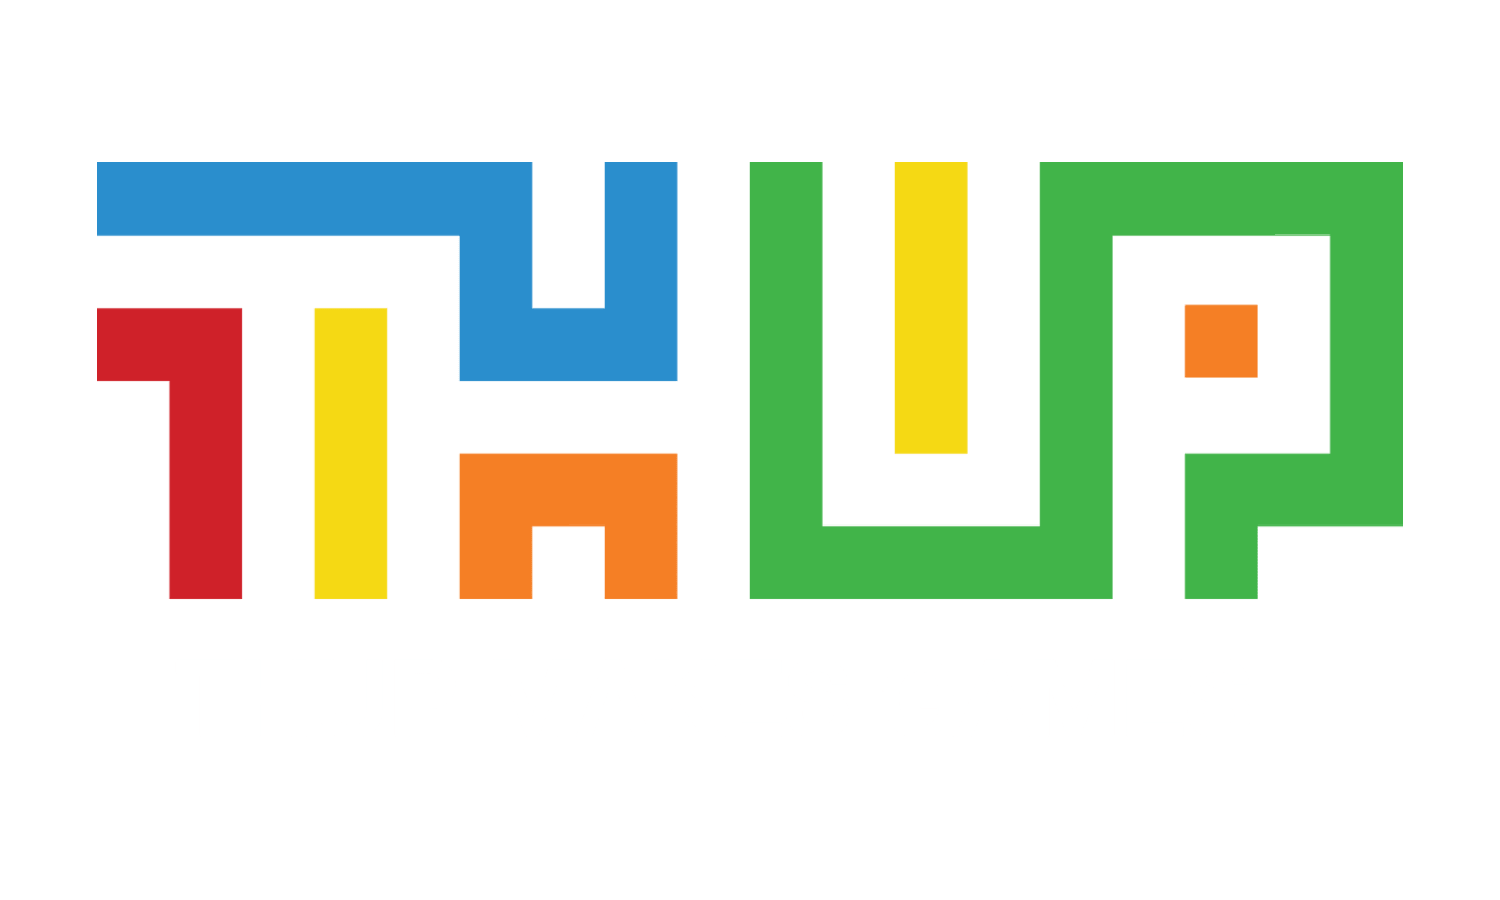 Thup Games